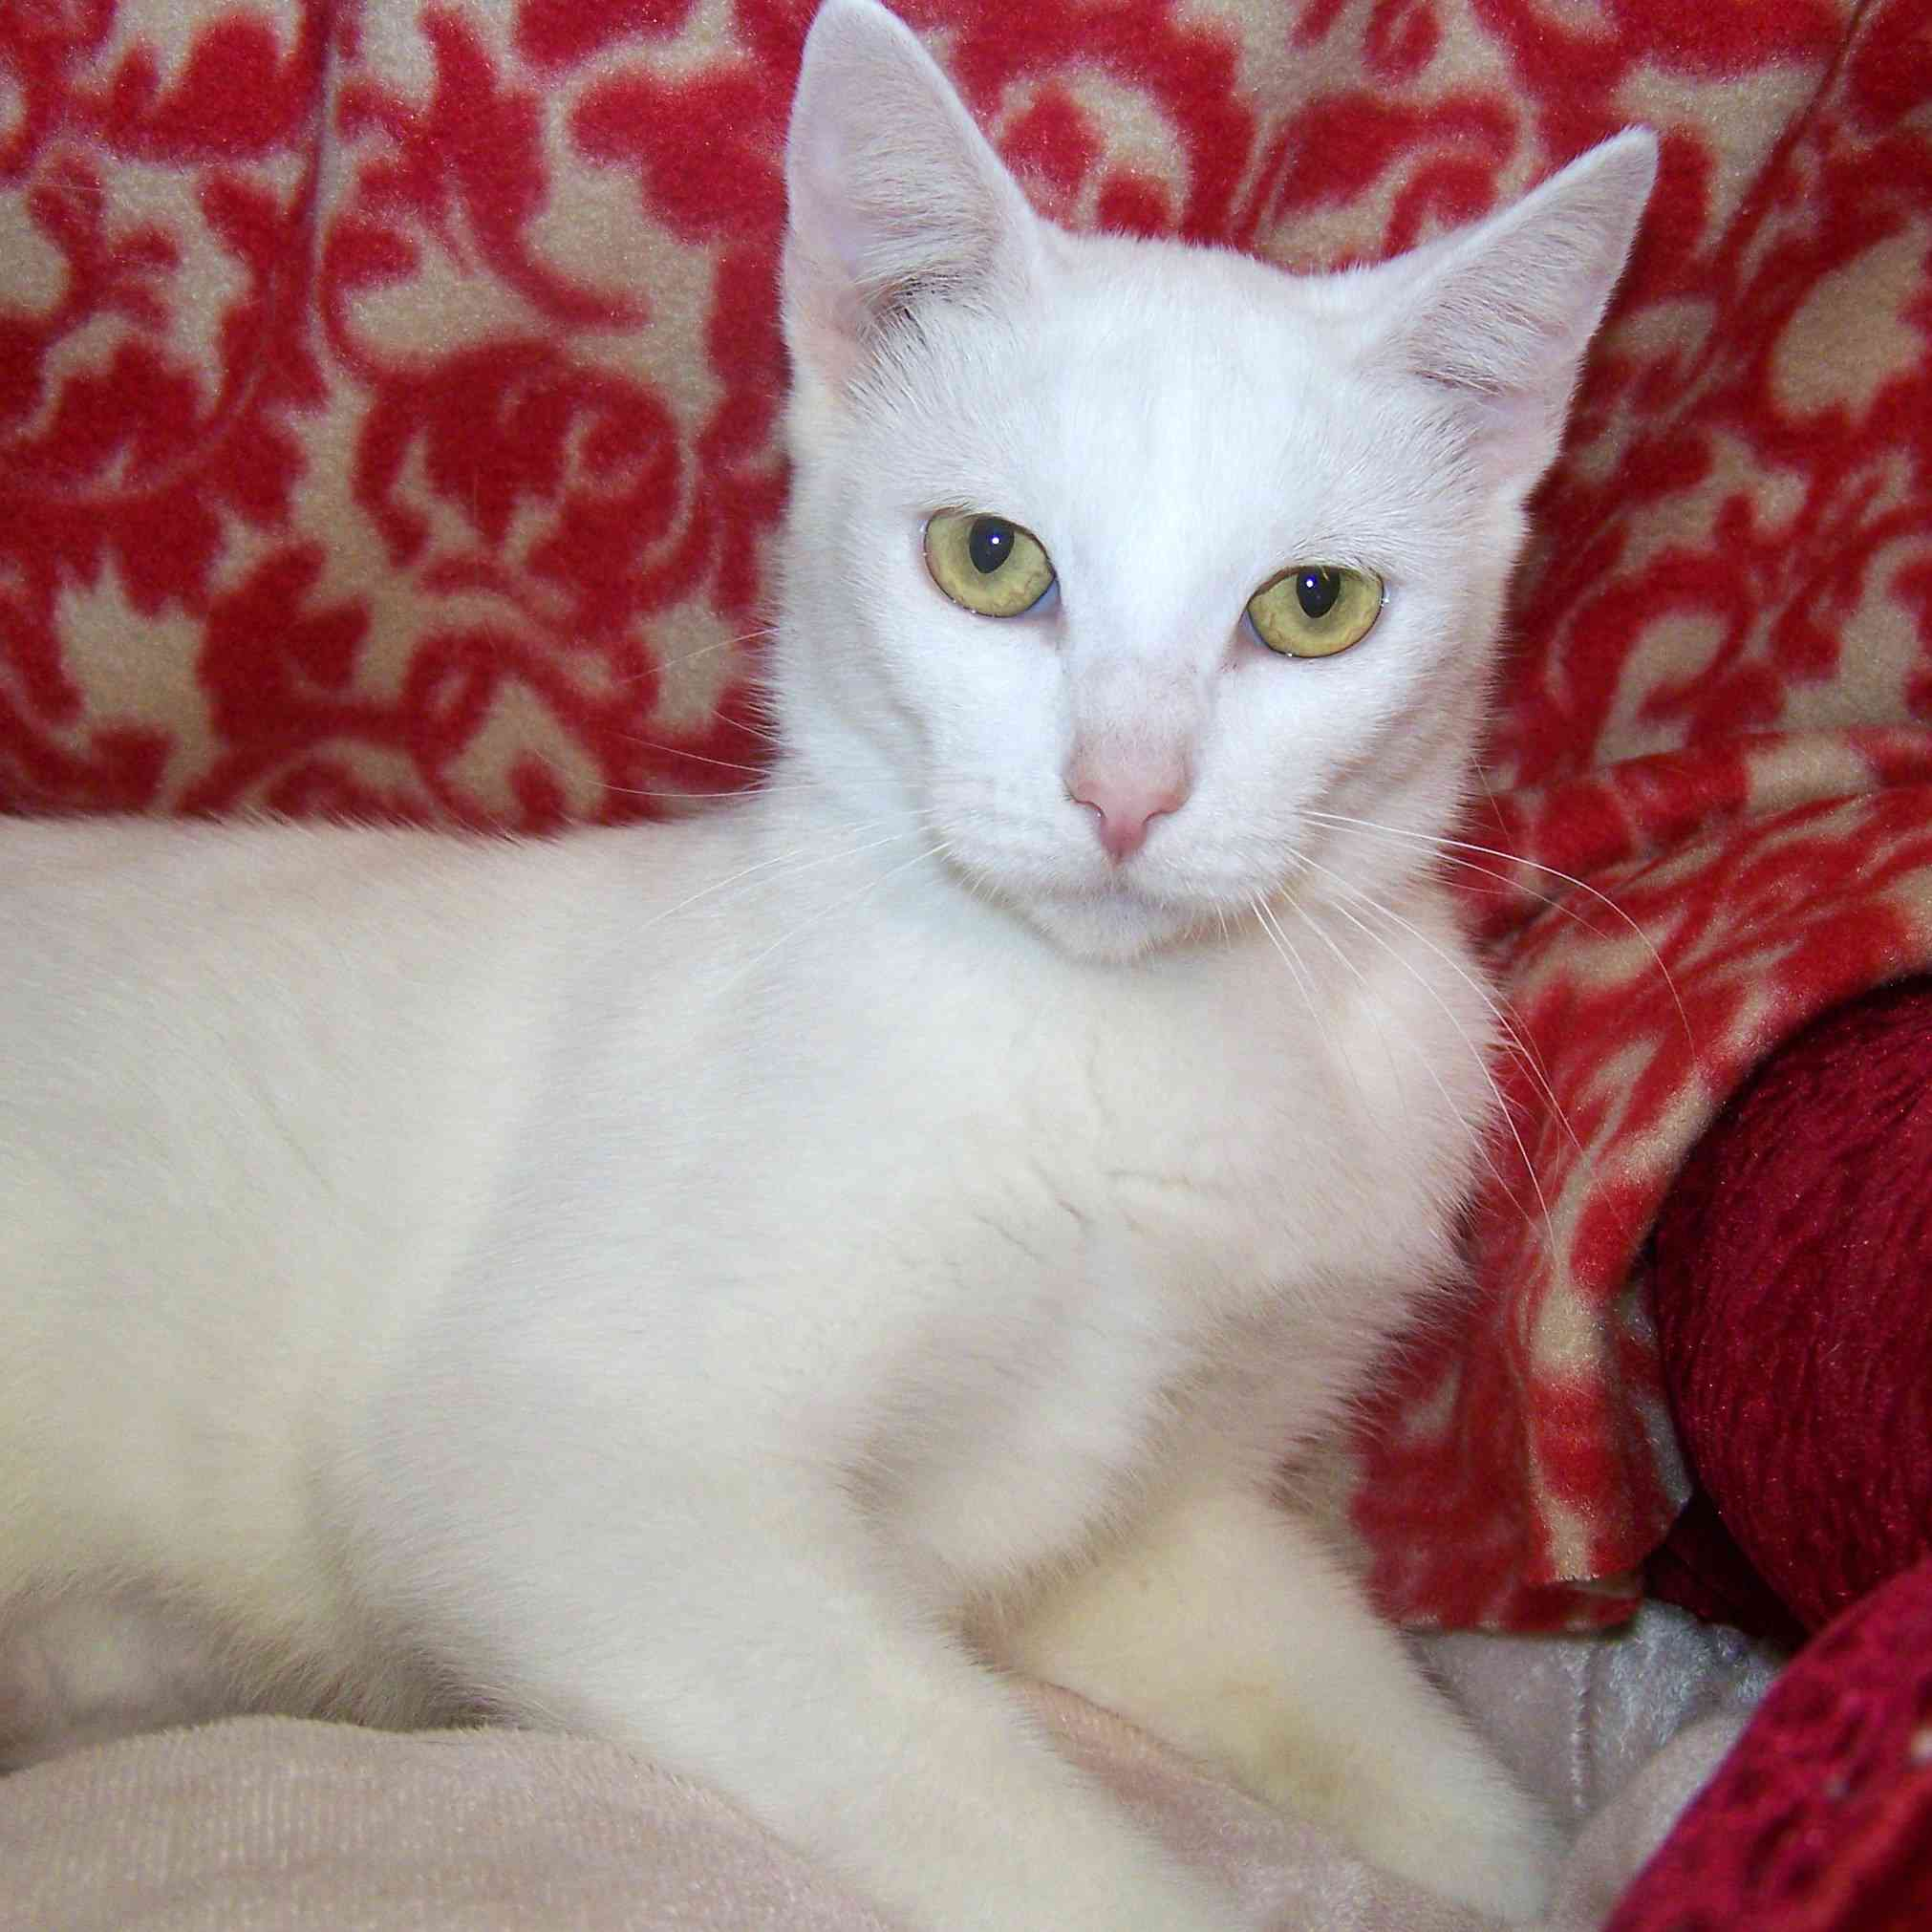 Give to us through Global Giving from 10/14-11/12 and have double the impact for homeless mother cats like Candy Cane.